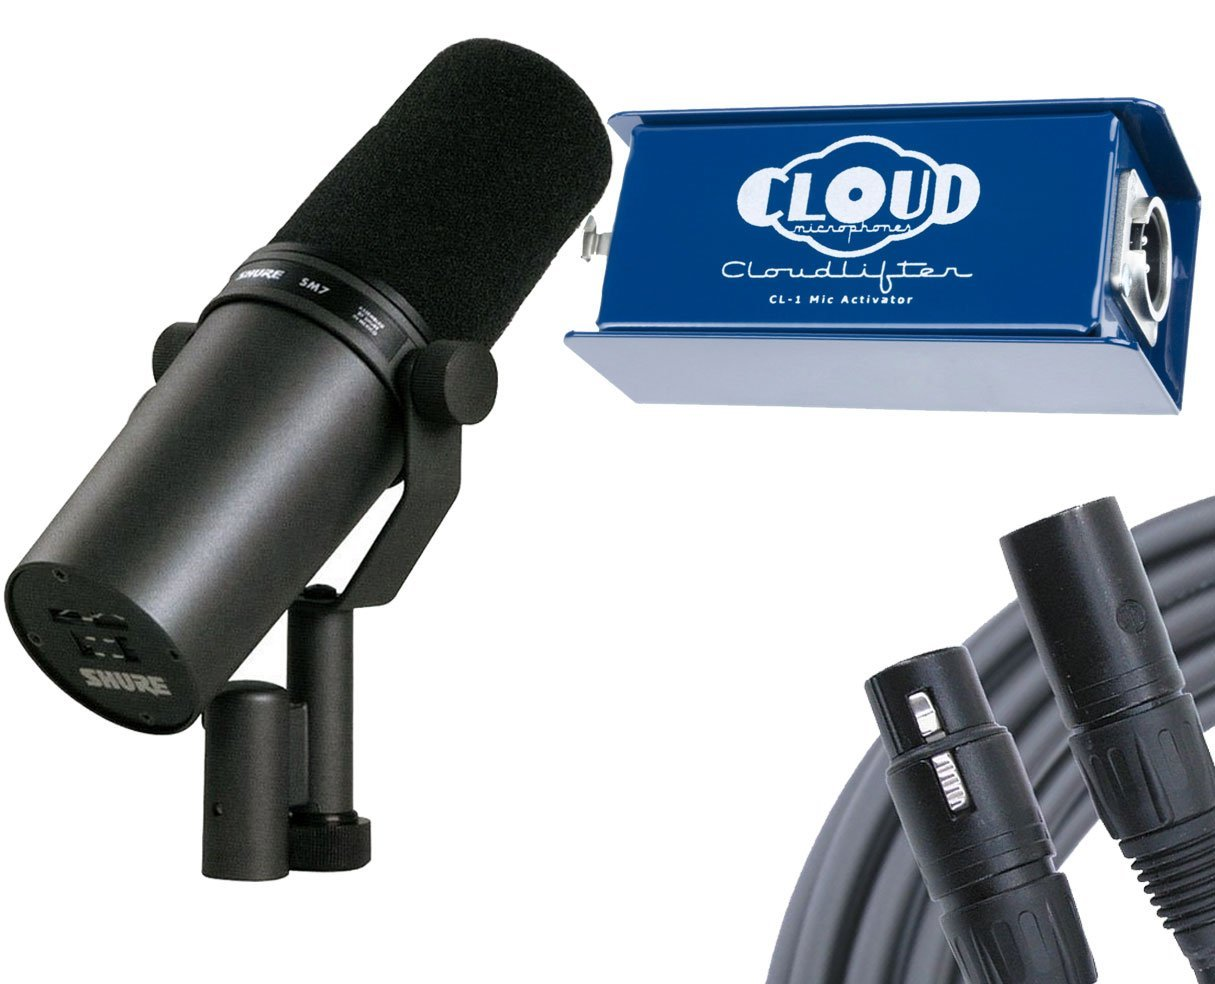 Shure SM7B Vocal Microphone + Cloud Cloudlifter CL-1 + Mogami Gold Studio 6' Microphone Cable